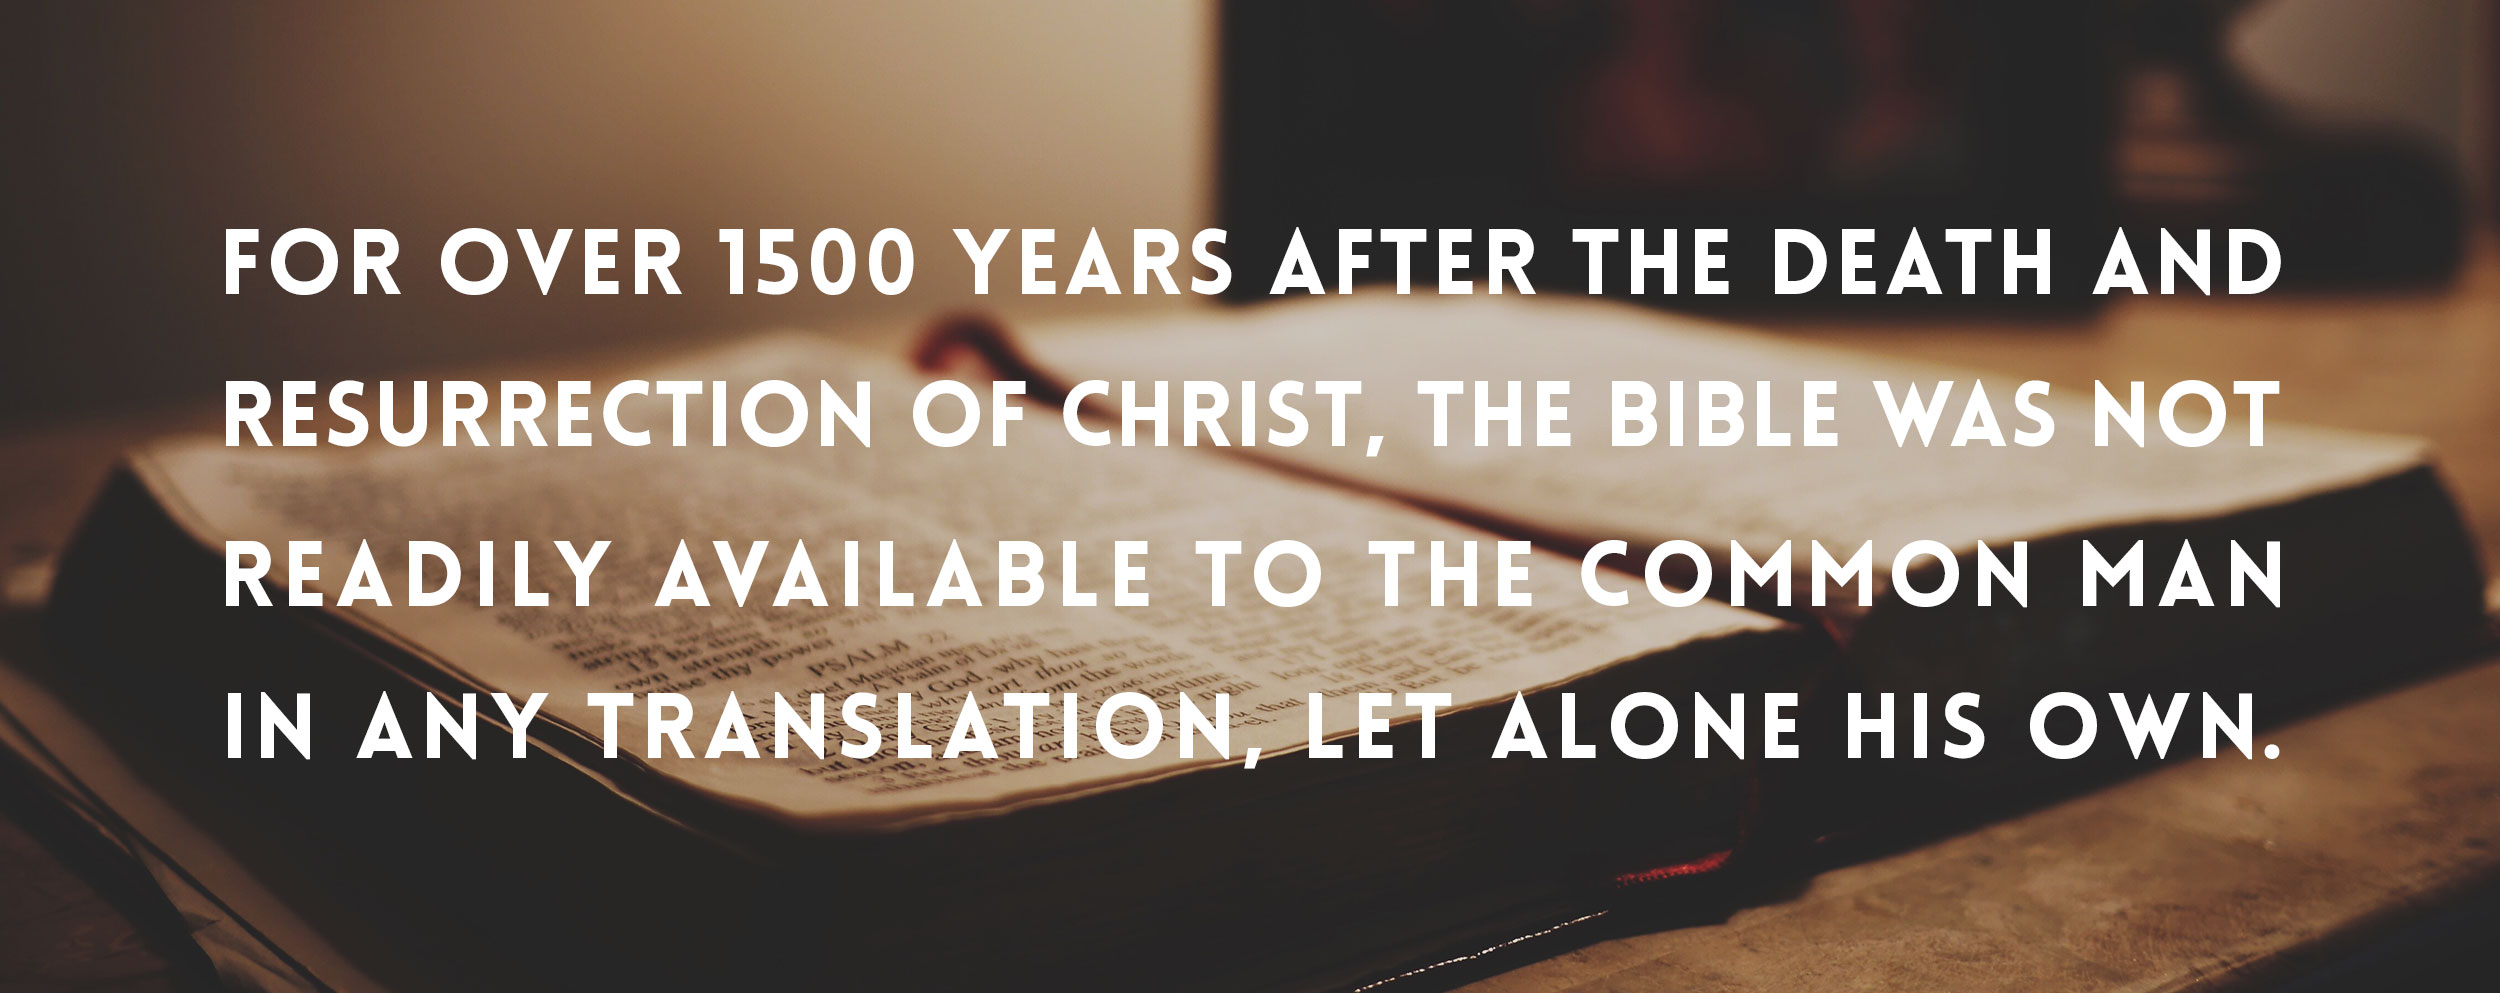 Learn how we got the first english bible